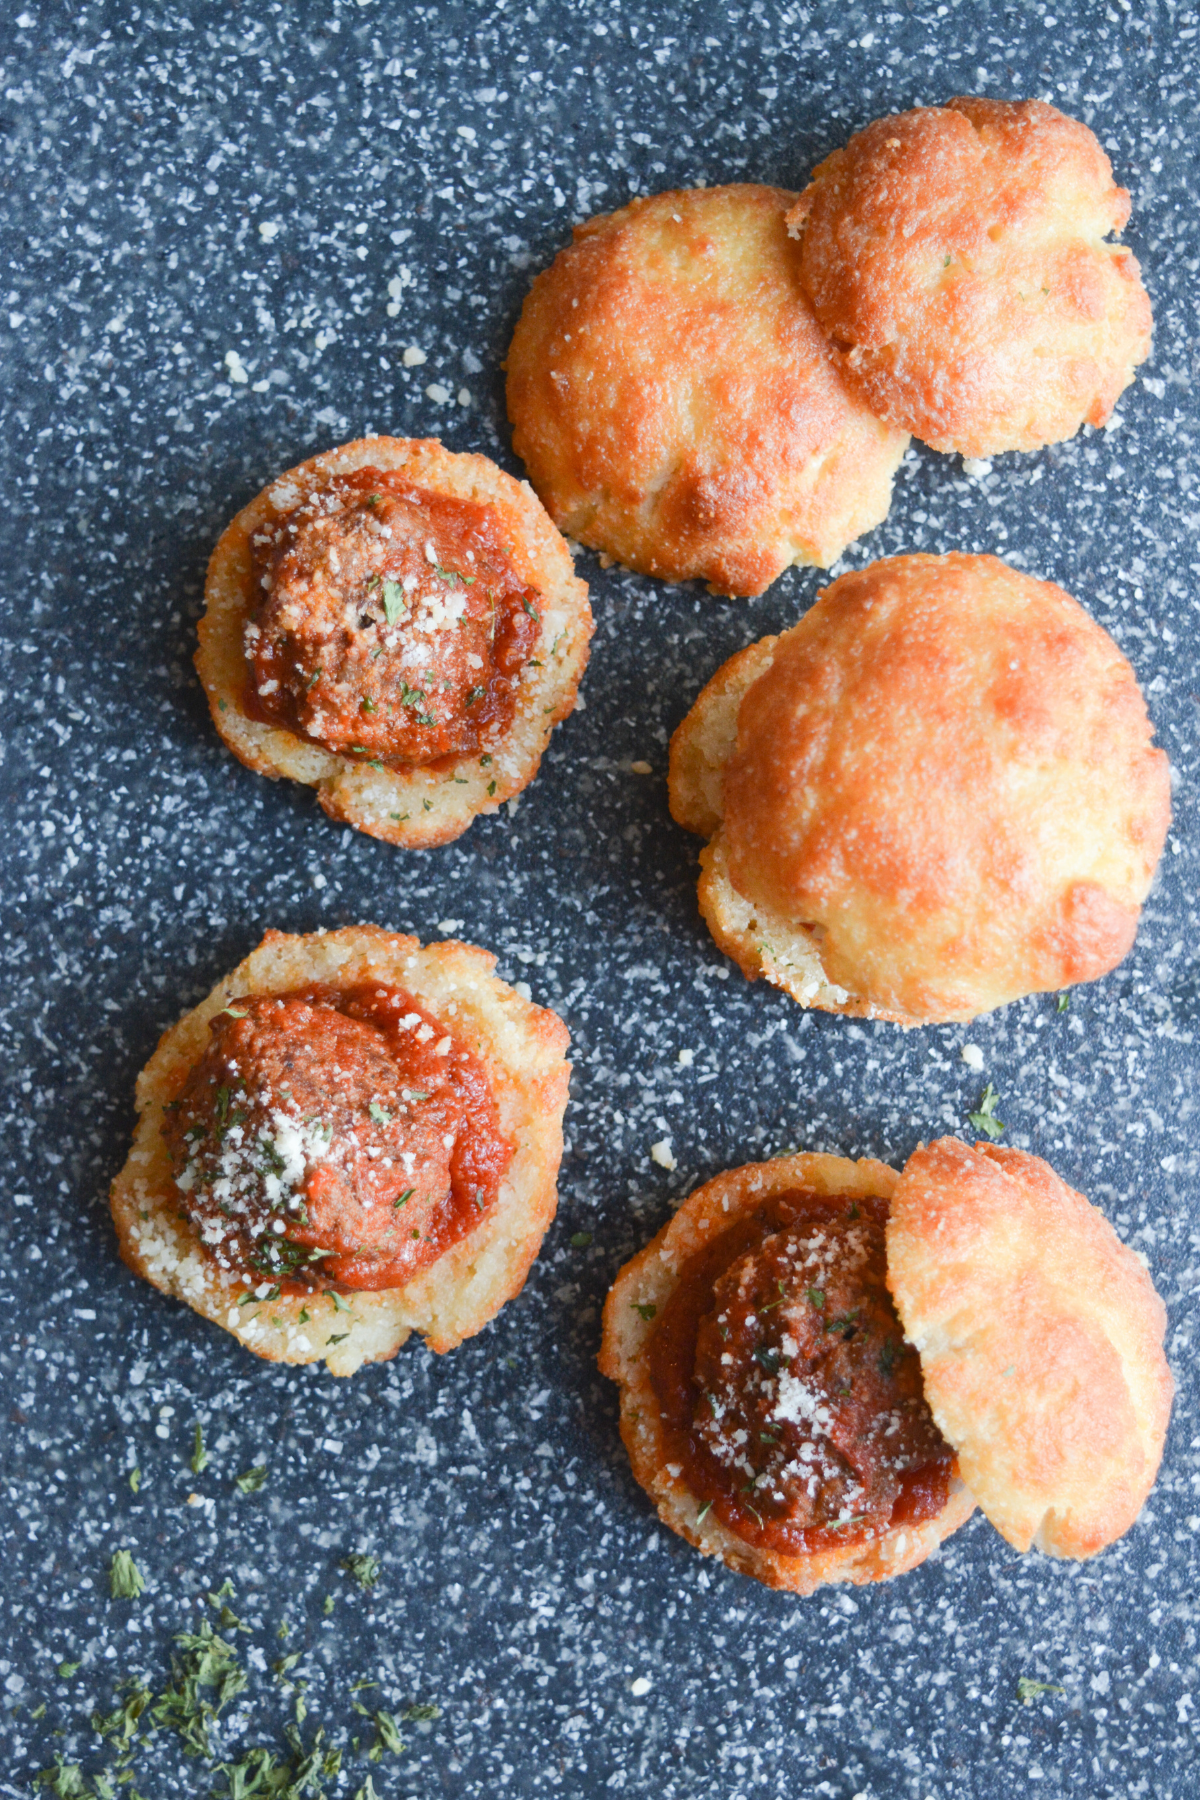 overhead shot of several garlic bread meatball sliders, showing the seasoned meatballs covered in parmesan cheese